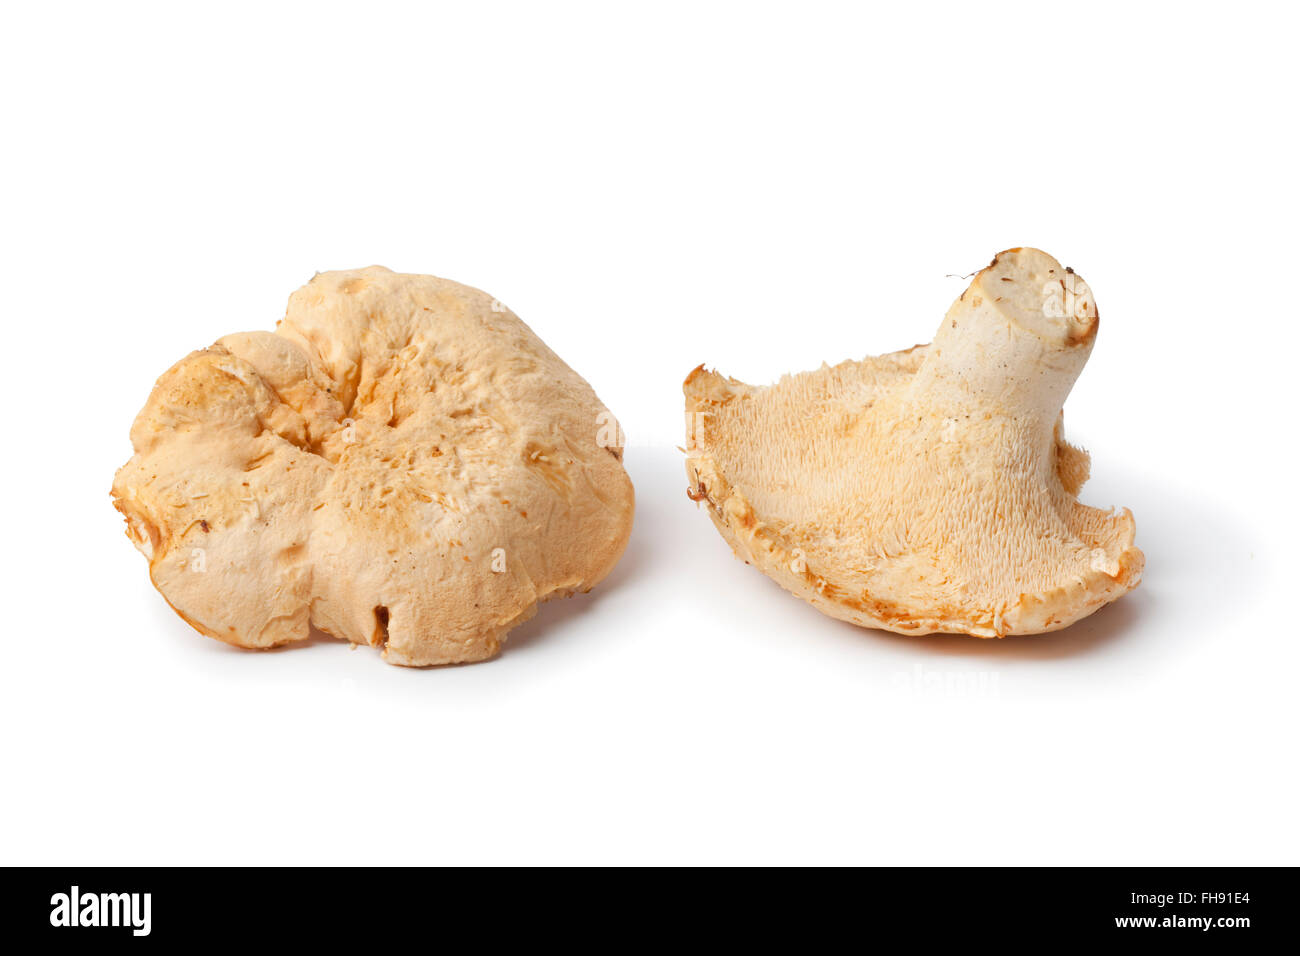 Fresh raw Pied de mouton mushrooms isolated on white background - Stock Image